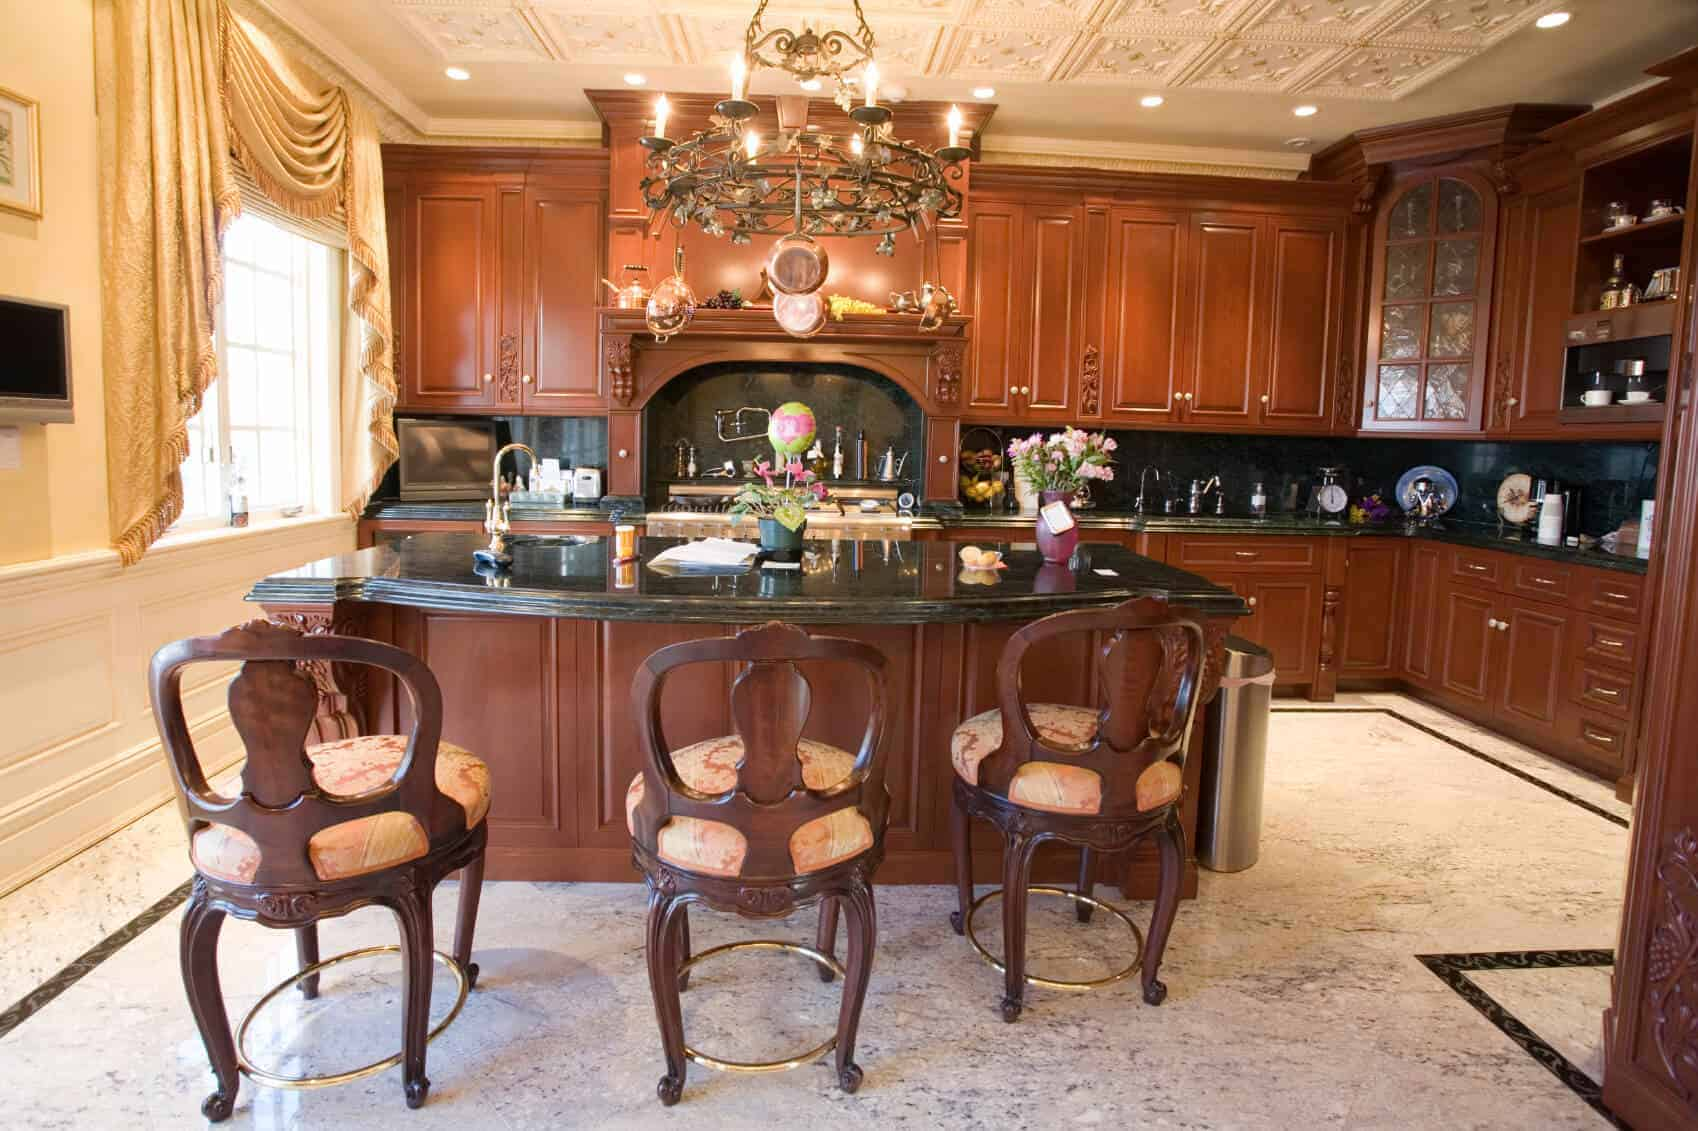 Dark cherry wood and darker marble countertops unify this kitchen, featuring expansive kitchen island lit by a stunning chandelier.